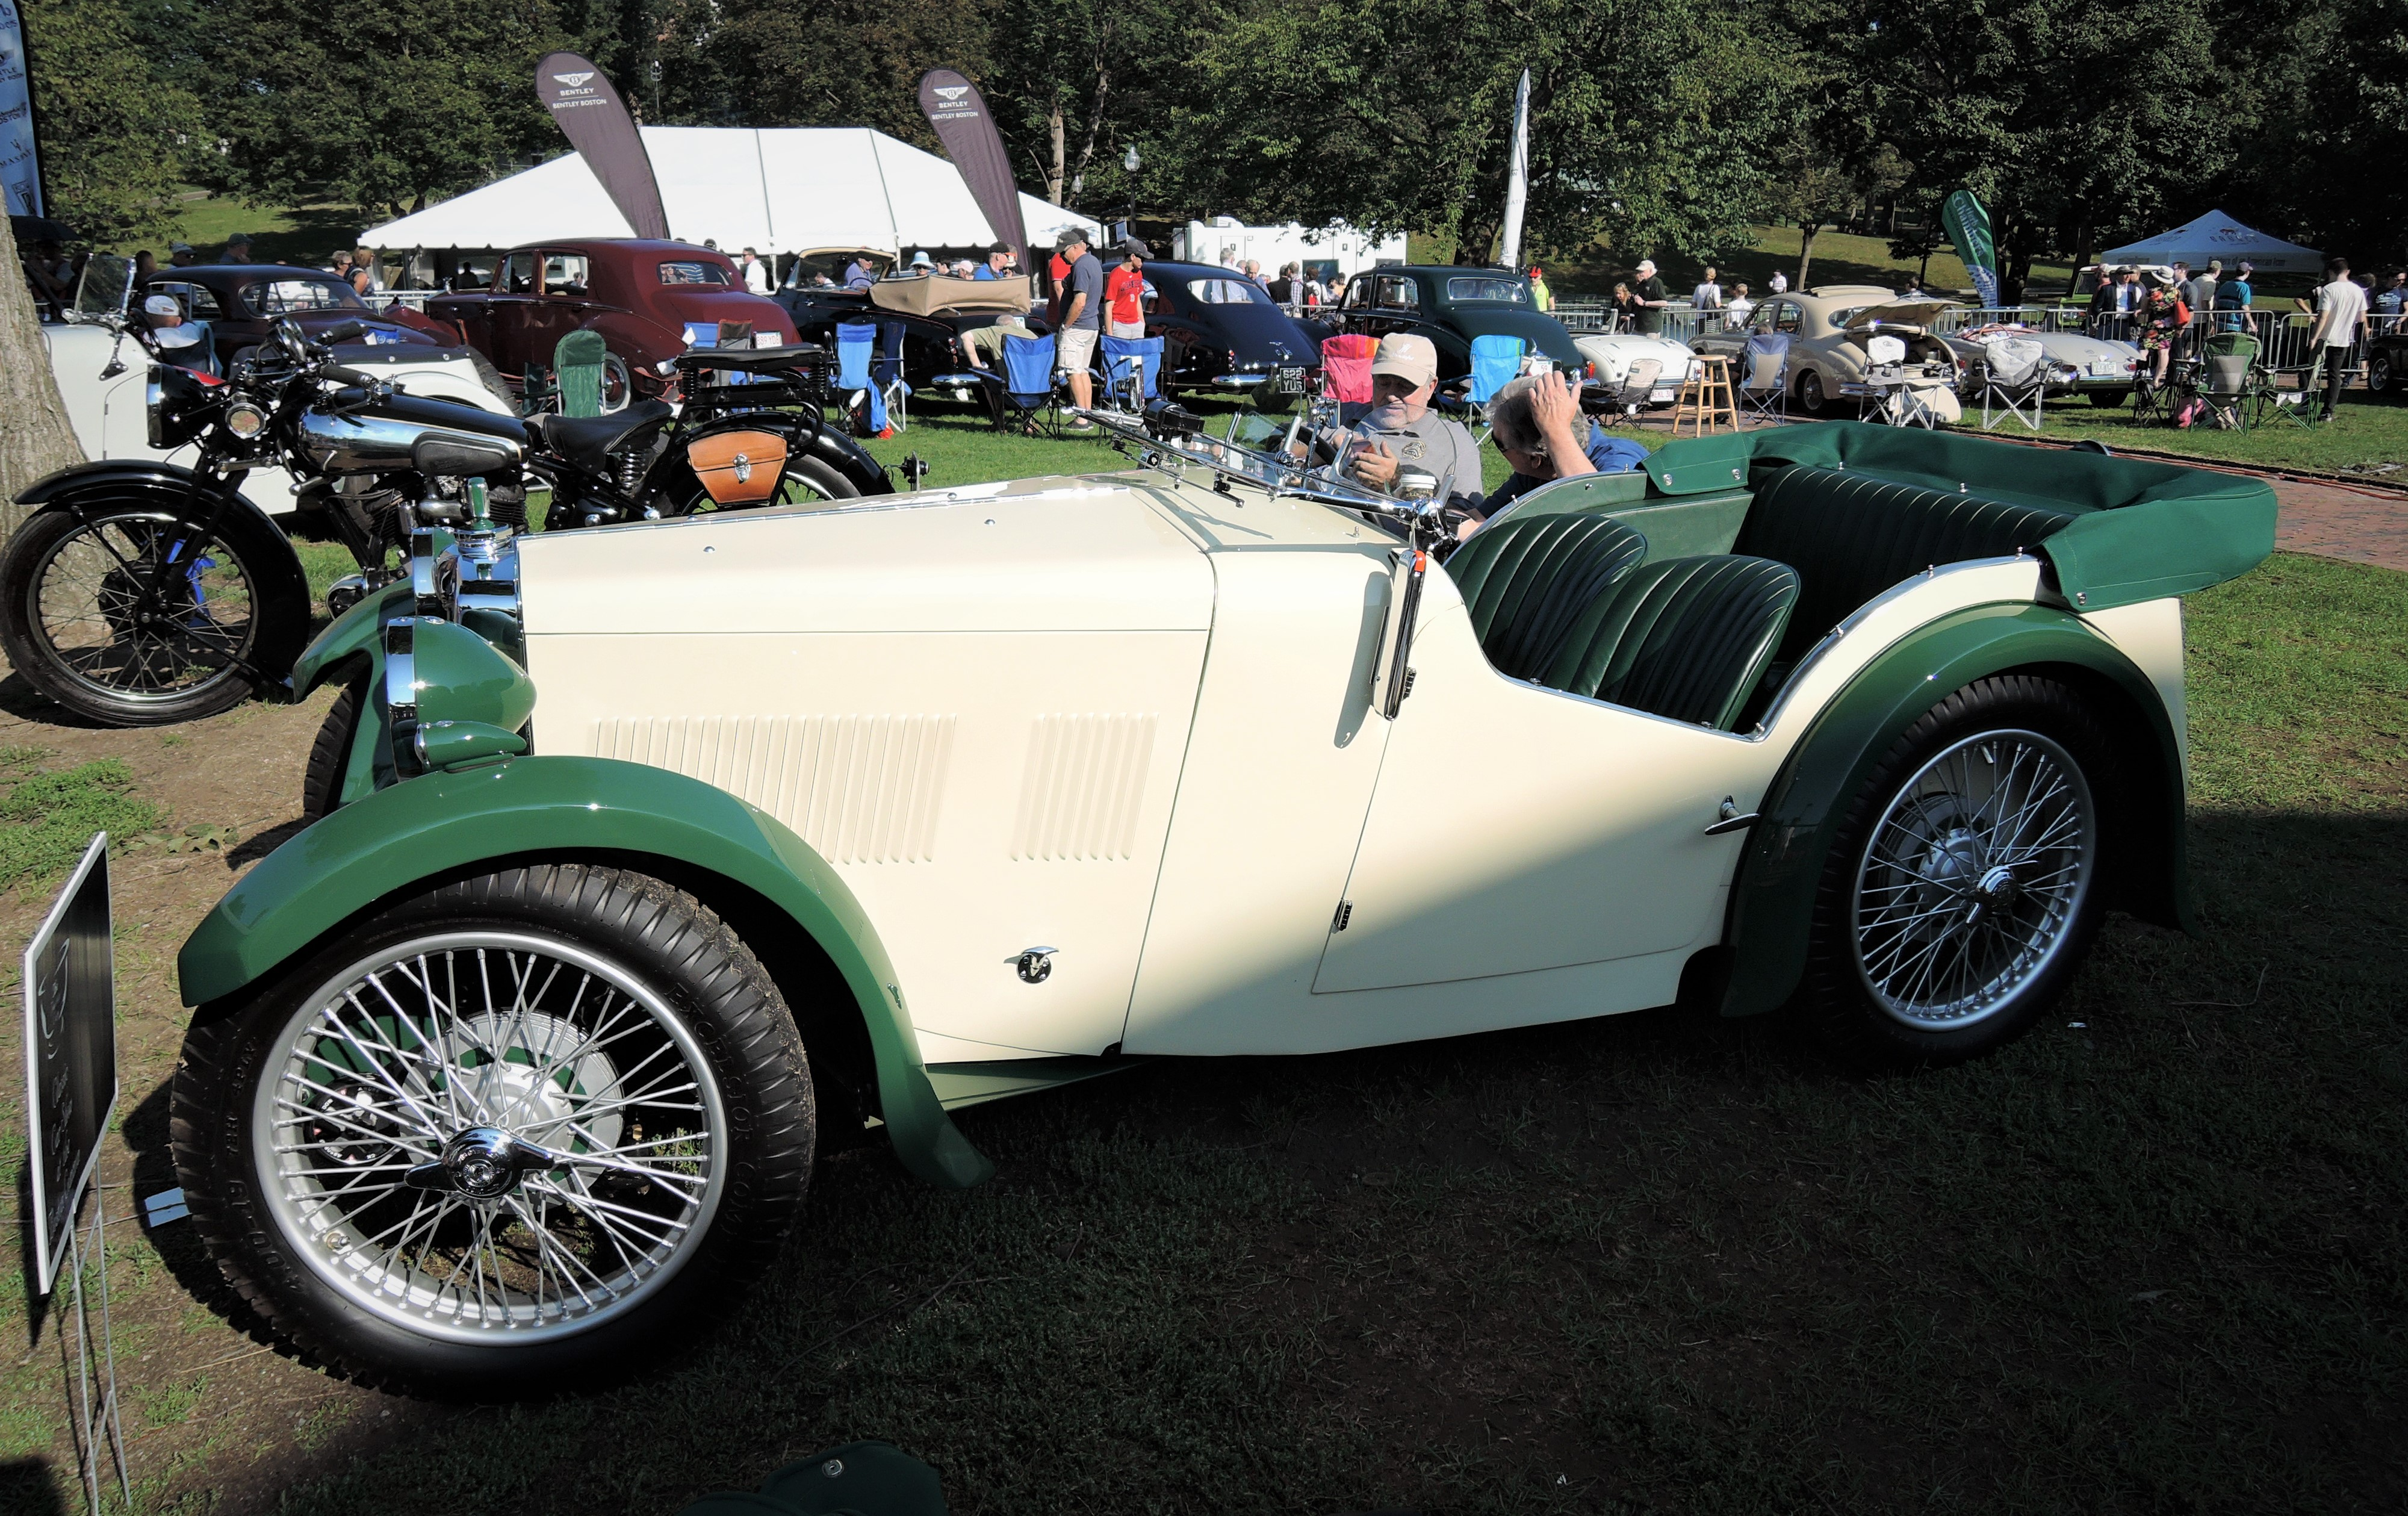 green/cream 1932 MG J1 - The Boston Cup 2017